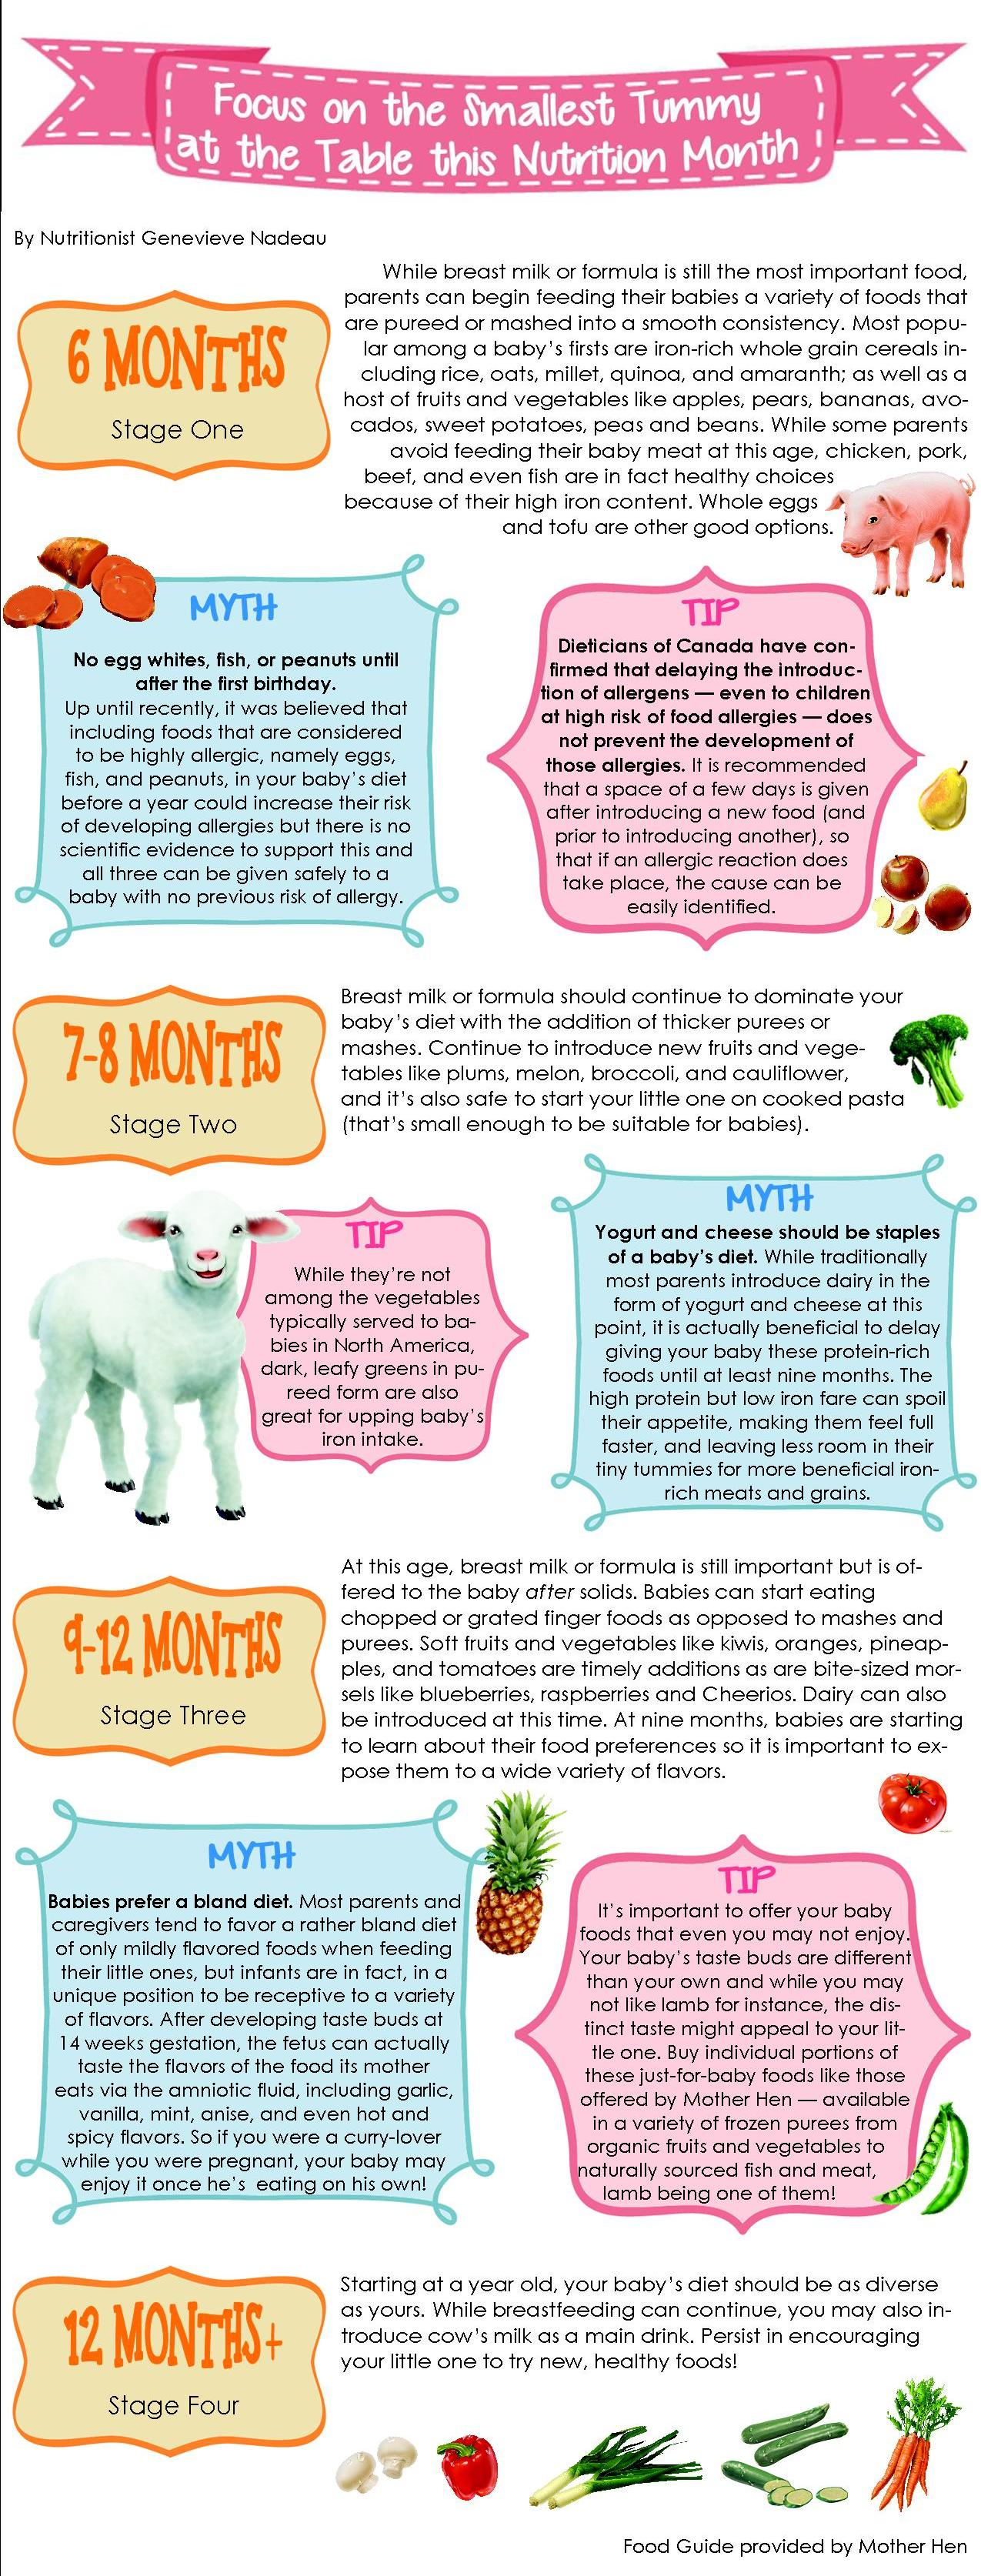 Nutrition tips for babies